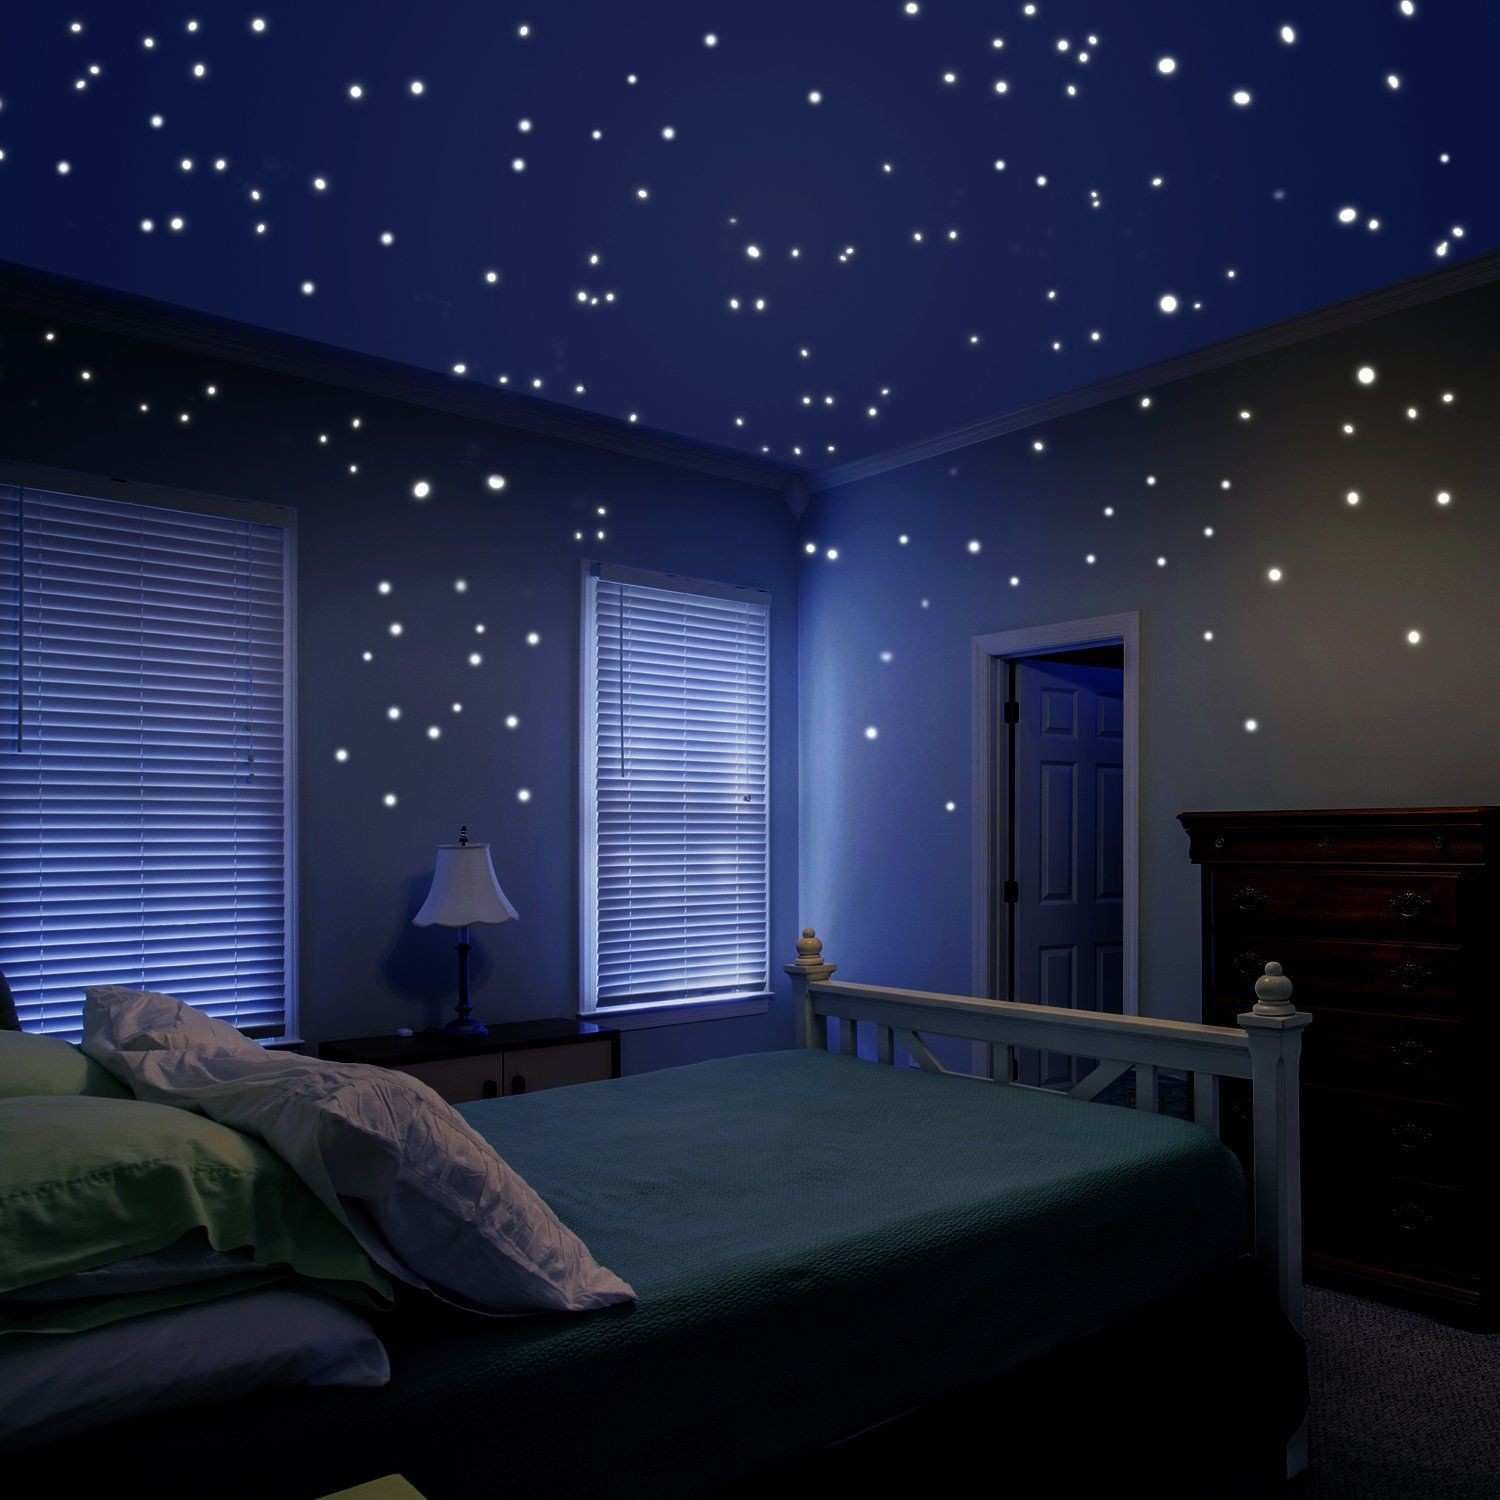 Glow in the Dark Star Decals Glowing Reusable Ceiling Décor of